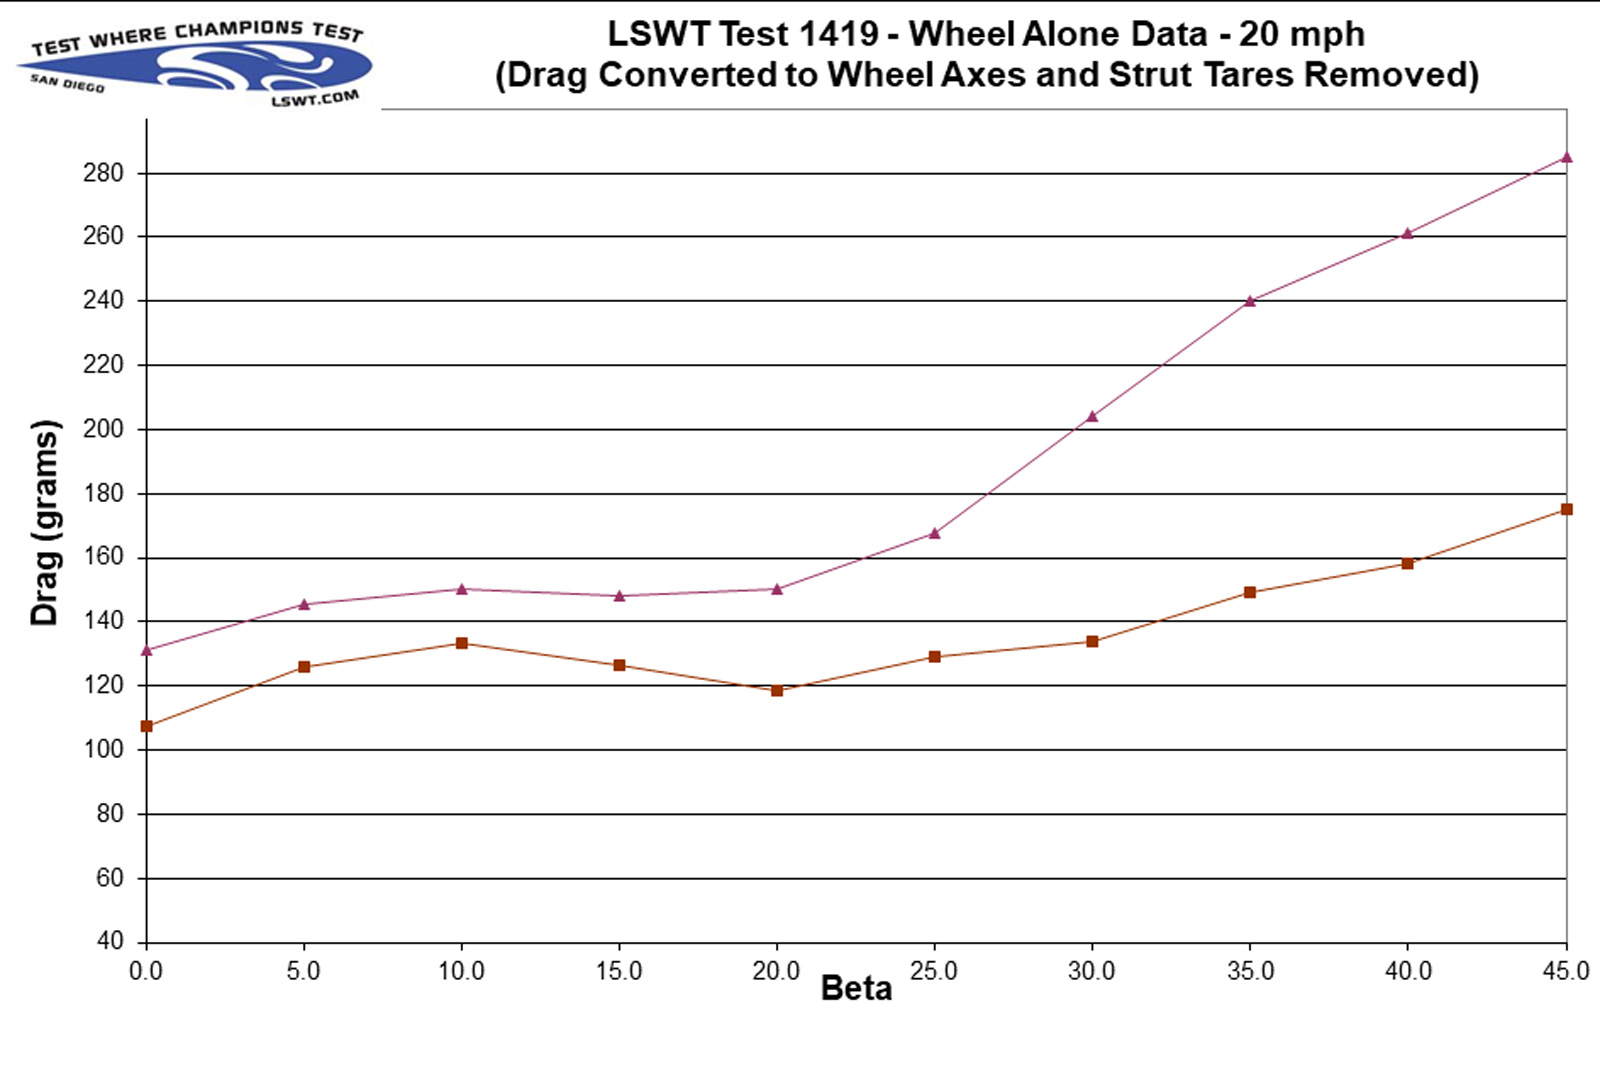 hed ardennes plus versus jet 6 conti cx tires drag measured wind tunnel data